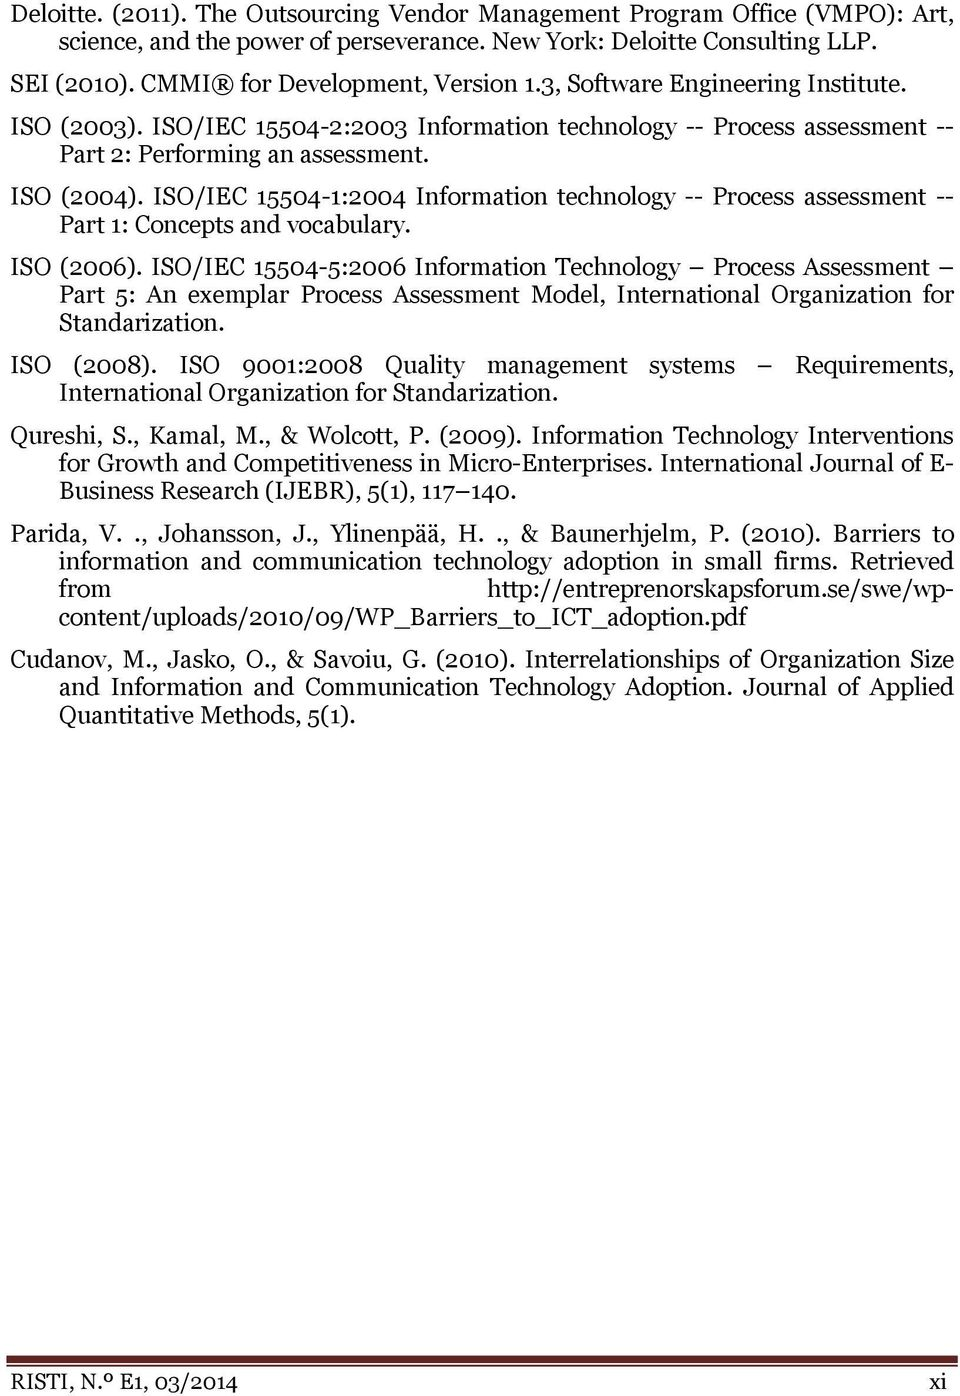 ISO/IEC 15504-1:2004 Information technology -- Process assessment -- Part 1: Concepts and vocabulary. ISO (2006).